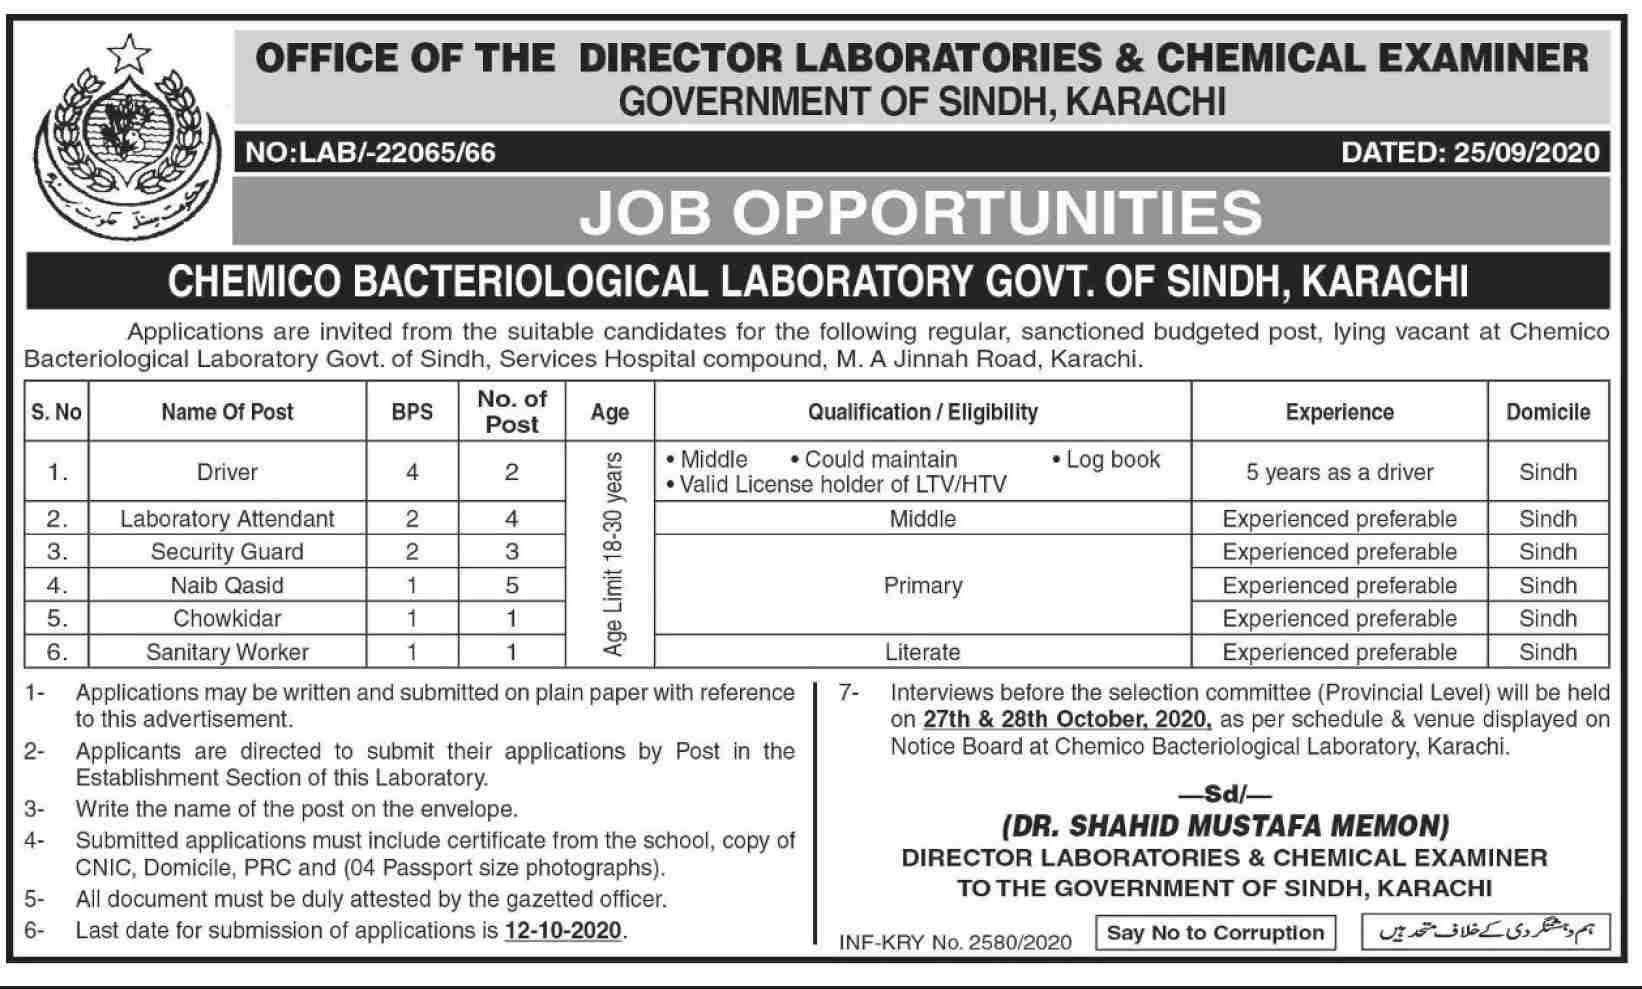 Jobs in Office of the Director Laboratories